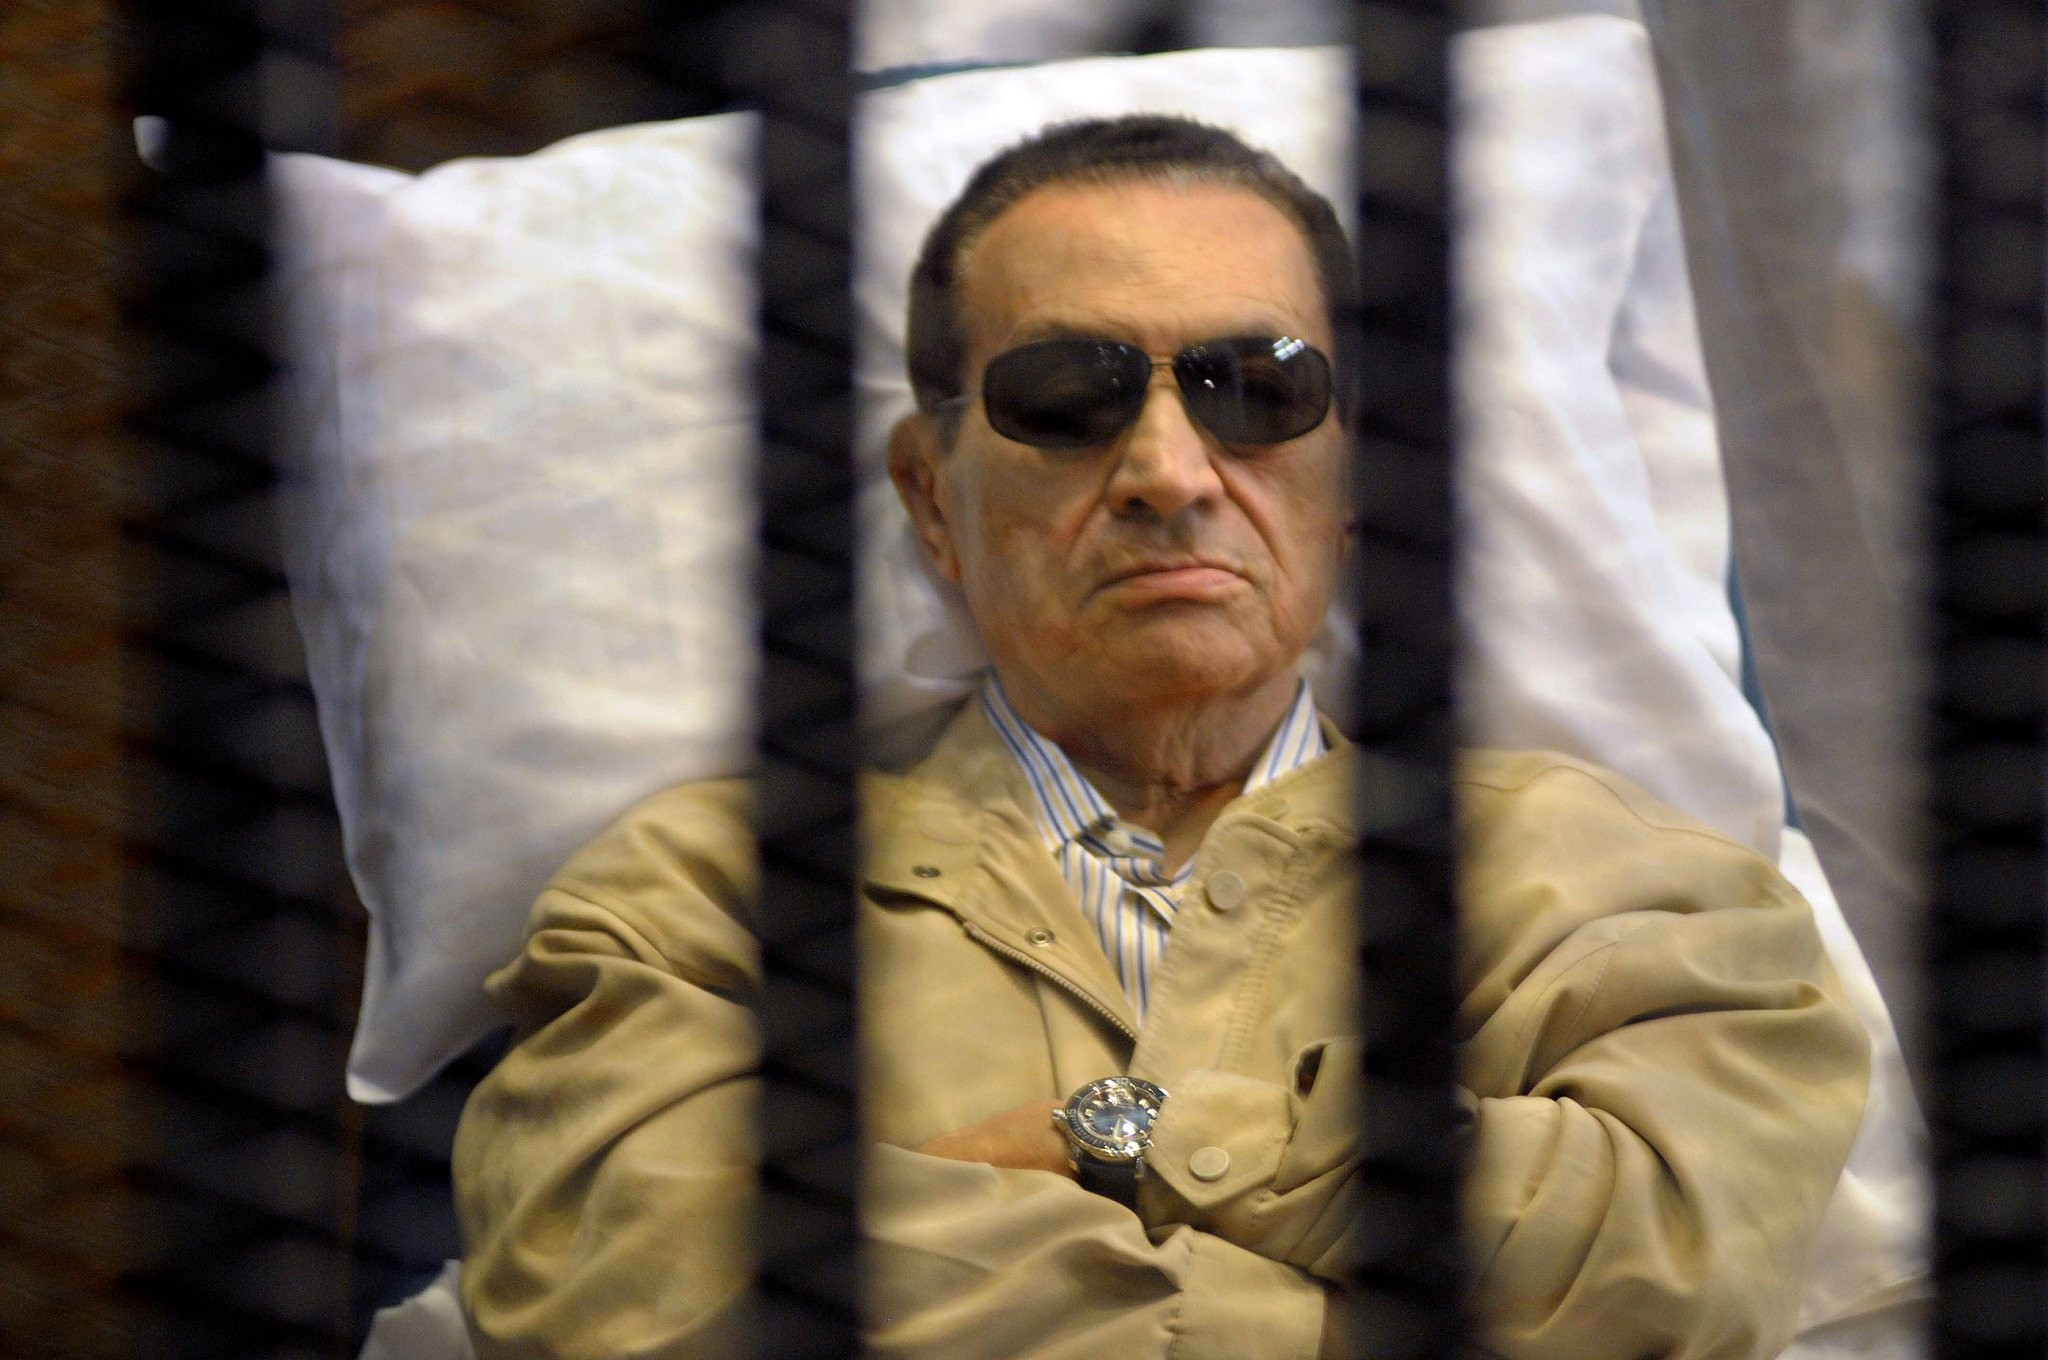 Ousted Egyptian president Hosni Mubarak sits inside a cage in a courtroom during his verdict hearing in Cairo on June 2, 2012.  (AFP Photo)